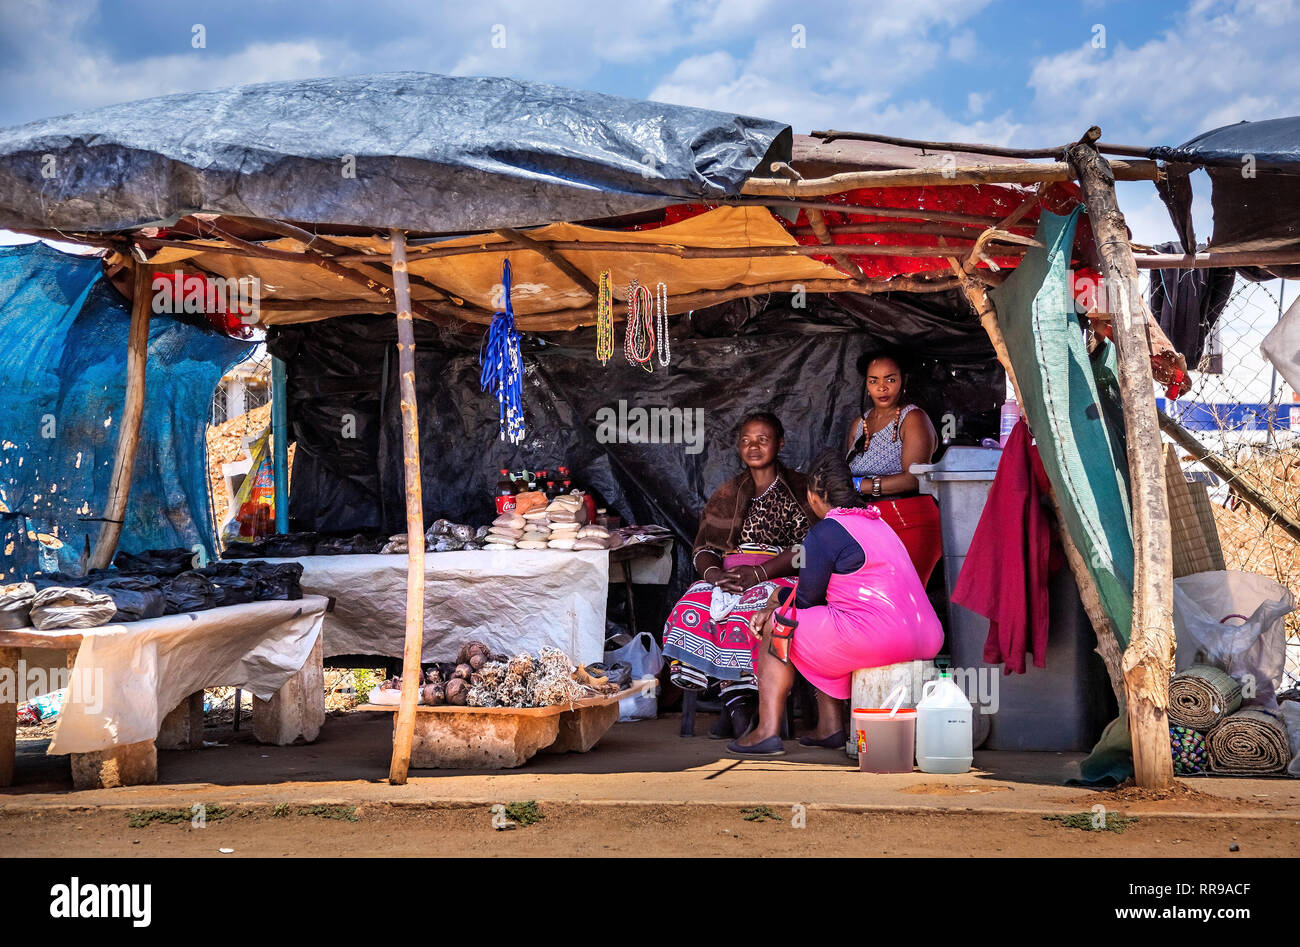 Johannesburg, South Africa, 9 November - 2018: Hawker stall with ladies selling local cures for common ailments, on the side of the road. - Stock Image